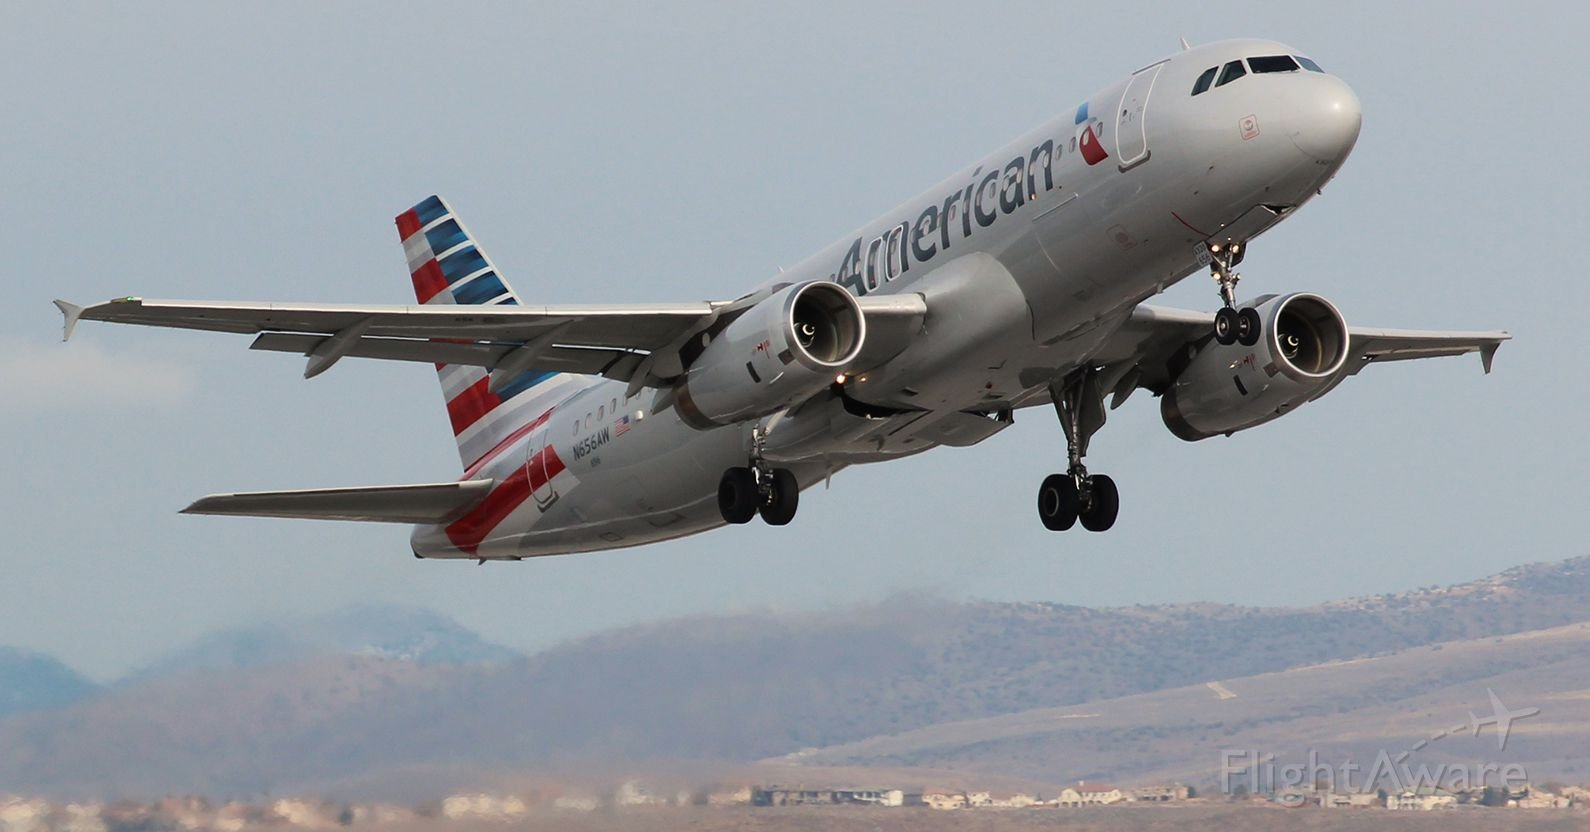 American Airlines A320 / Flight Aware